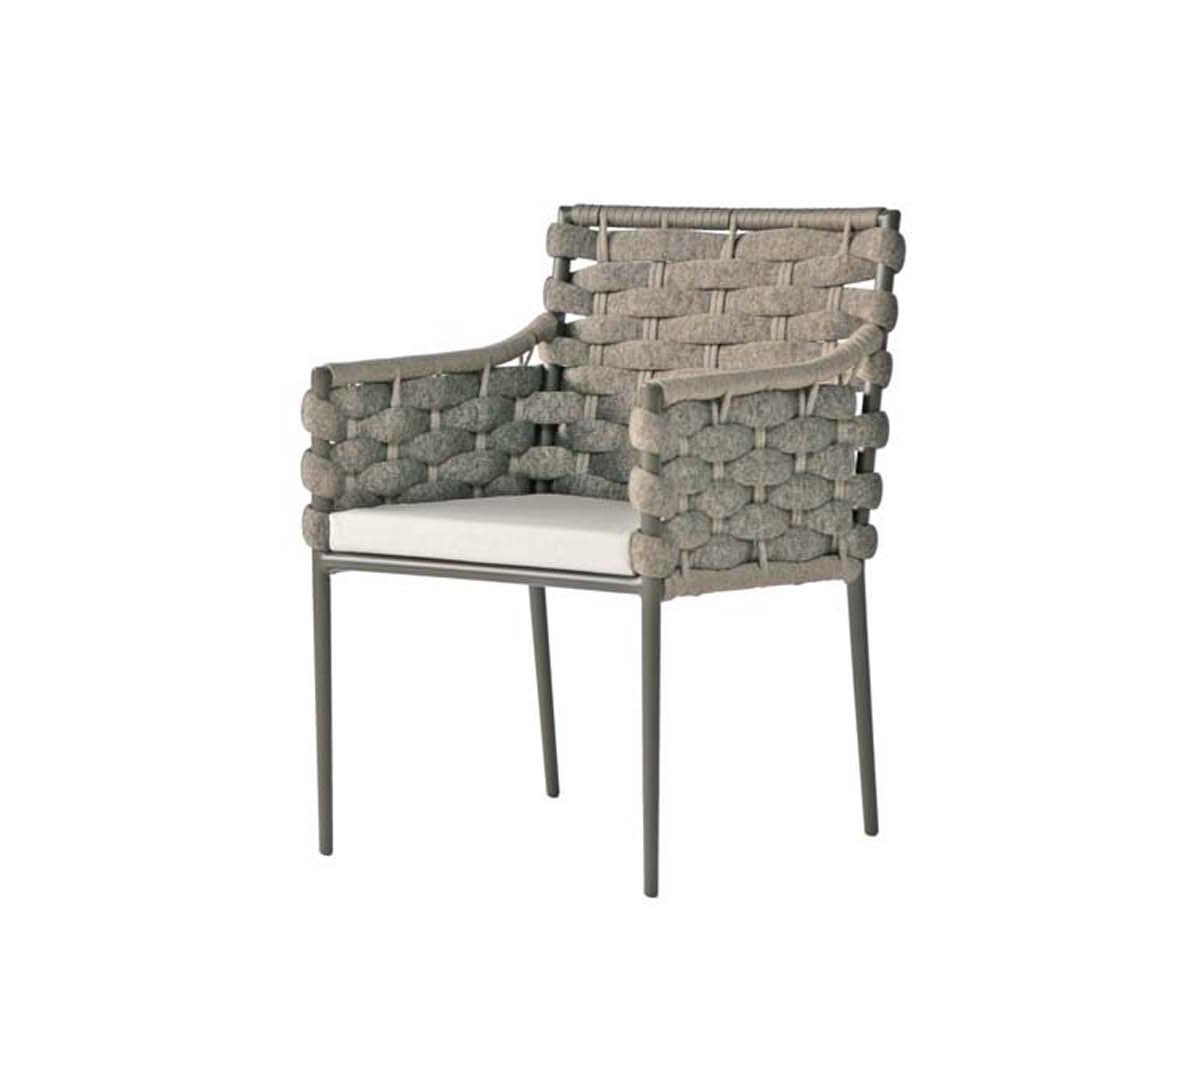 The Bogota dining arm chair in grey finish with light grey seat cushion.